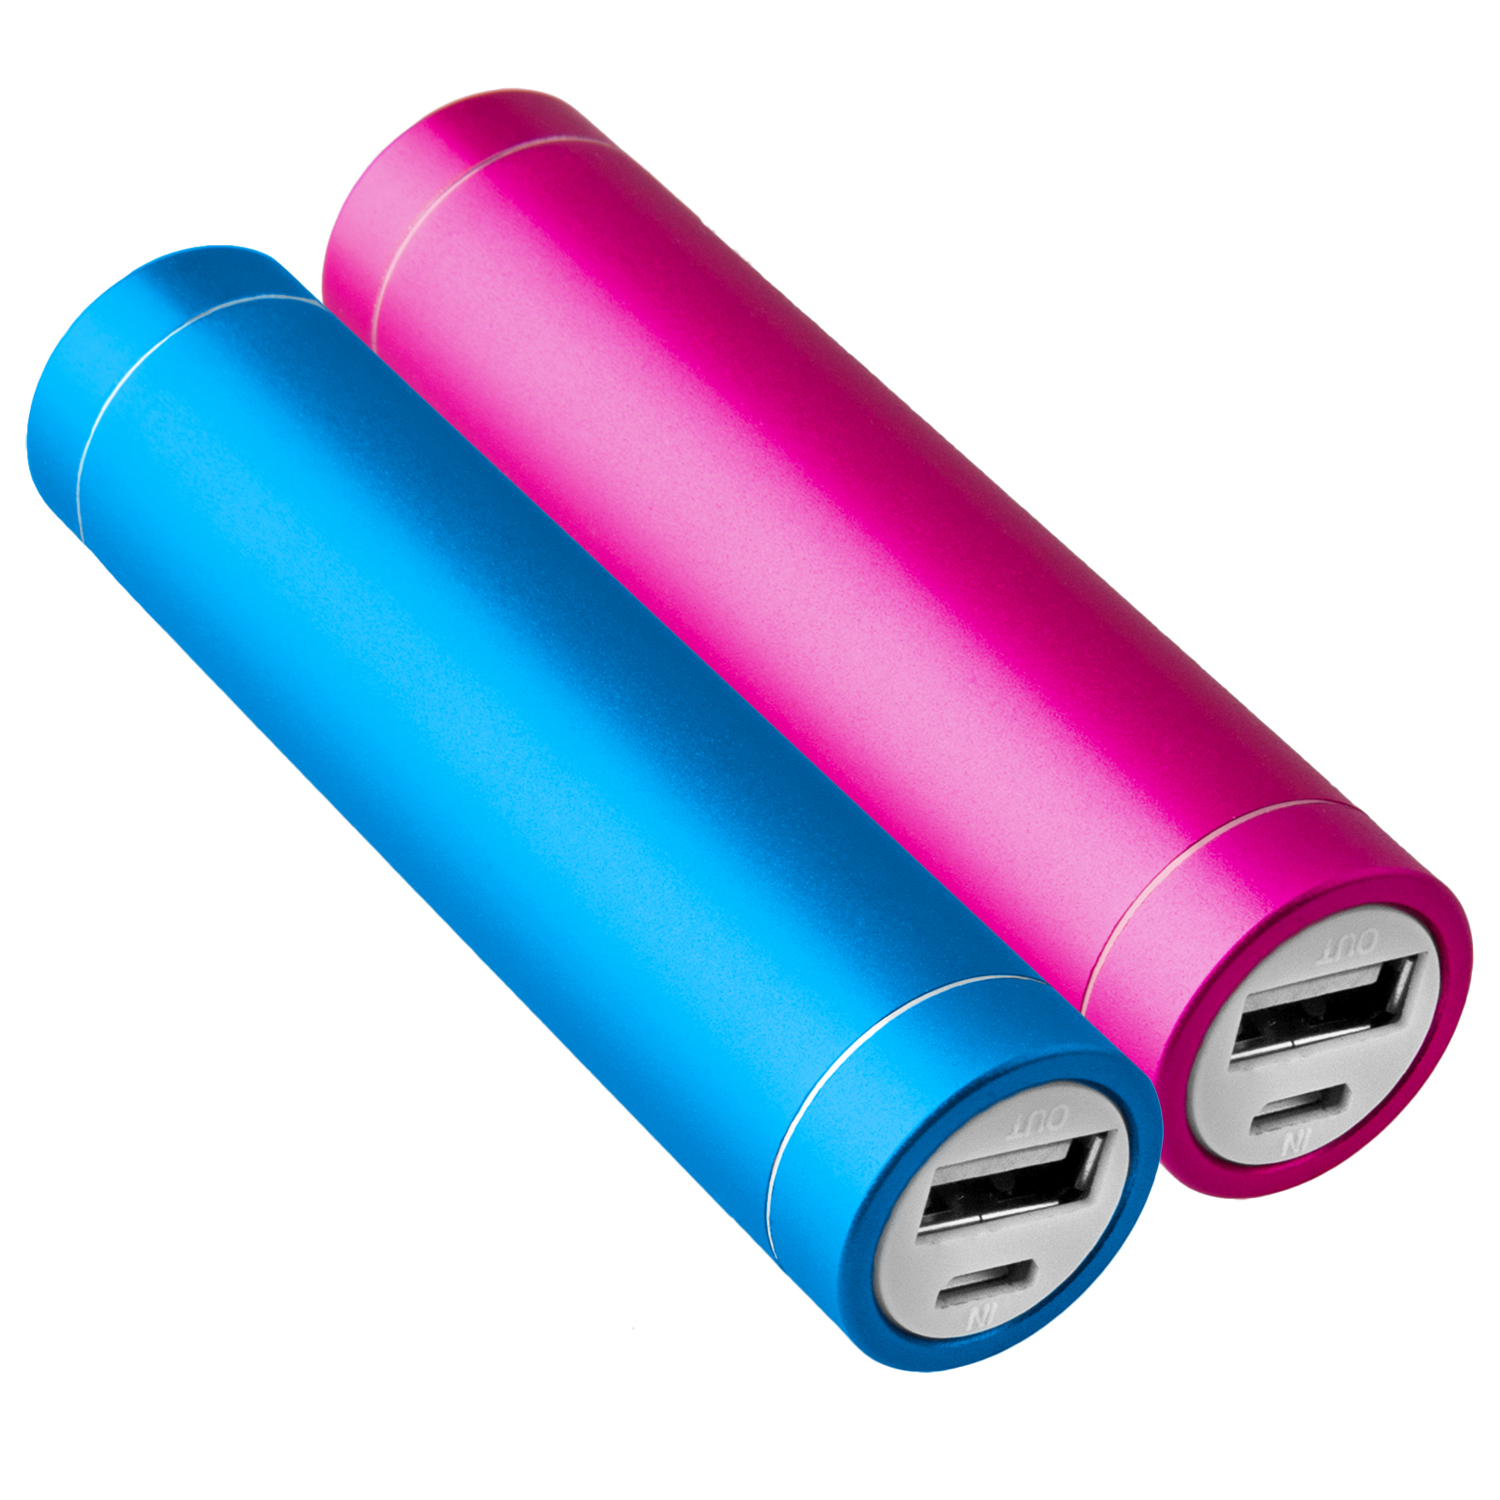 2x-Power-Bank-Akku-2600-mAh-Ladegeraet-extern-USB-iPhone-5s-blau-pink-NT003